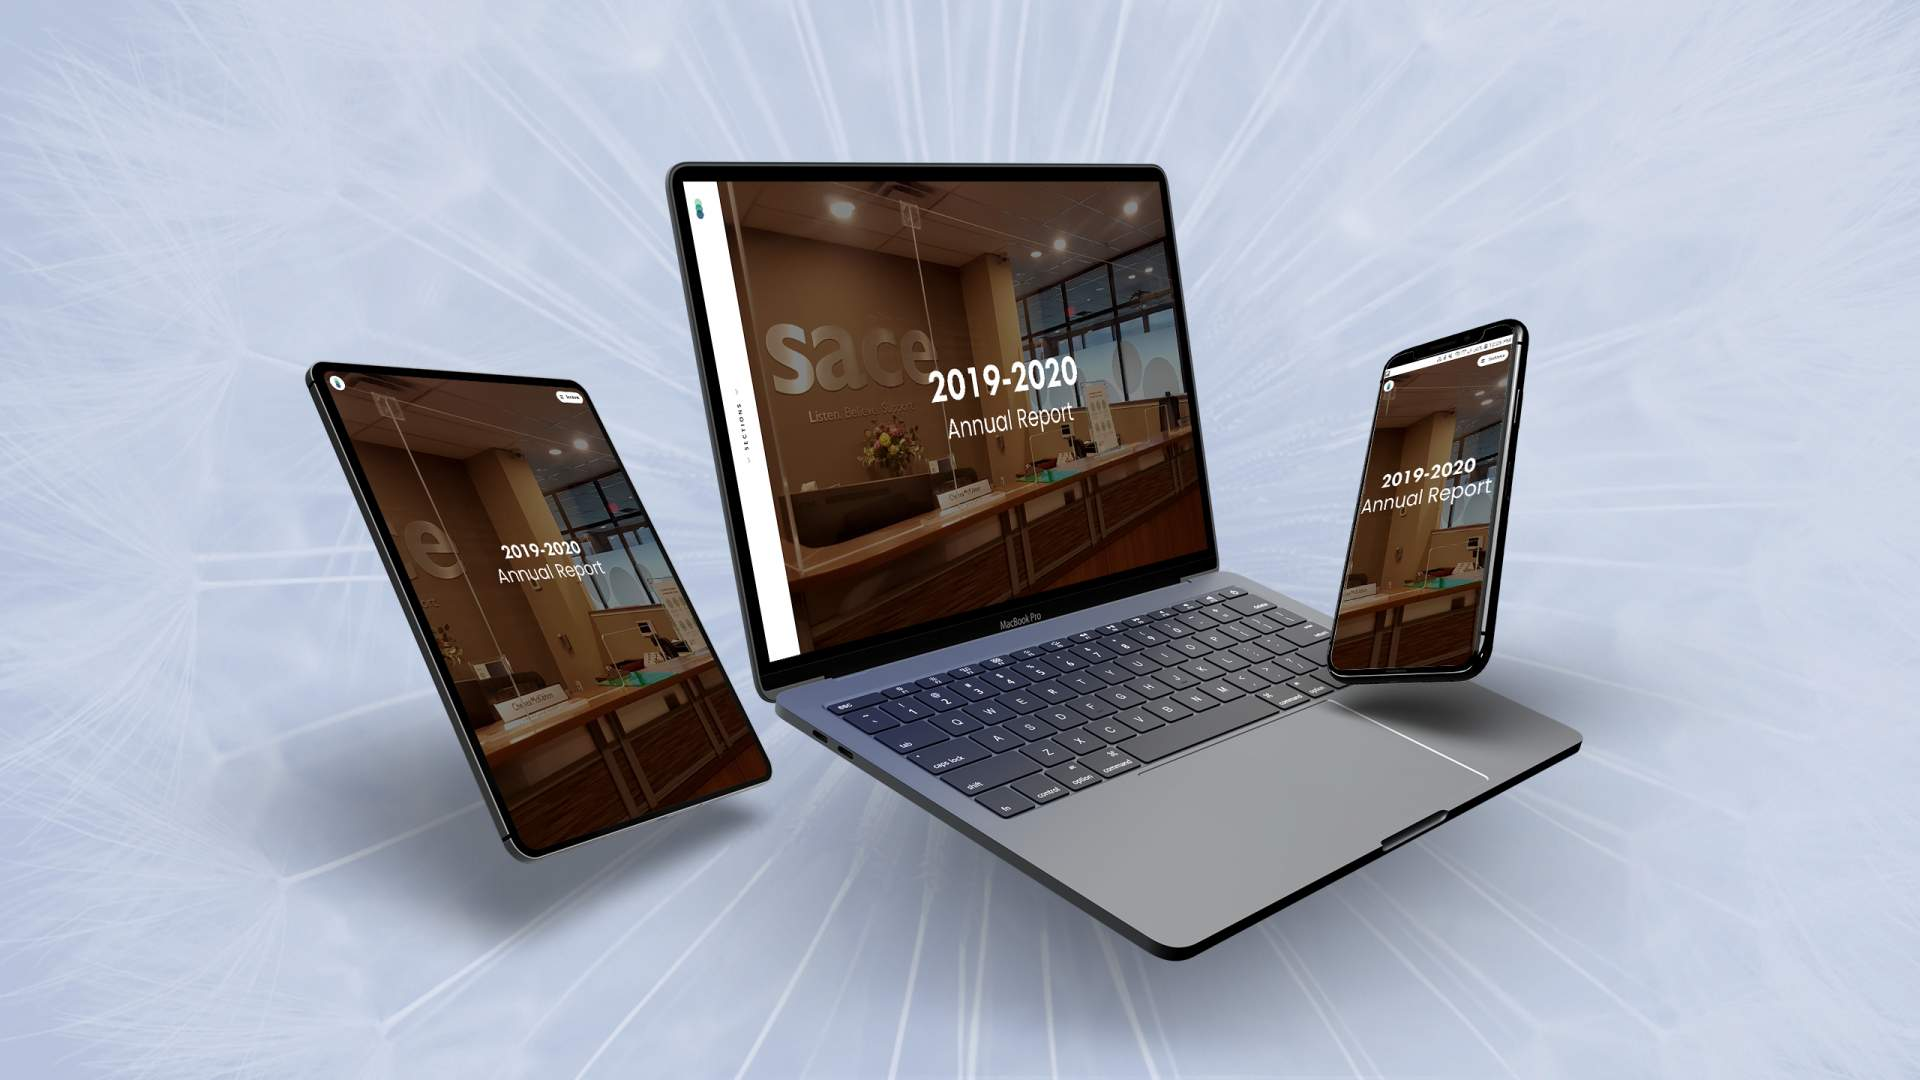 Display Of SACE Annual Report On Laptop, Tablet, And Smart Phone